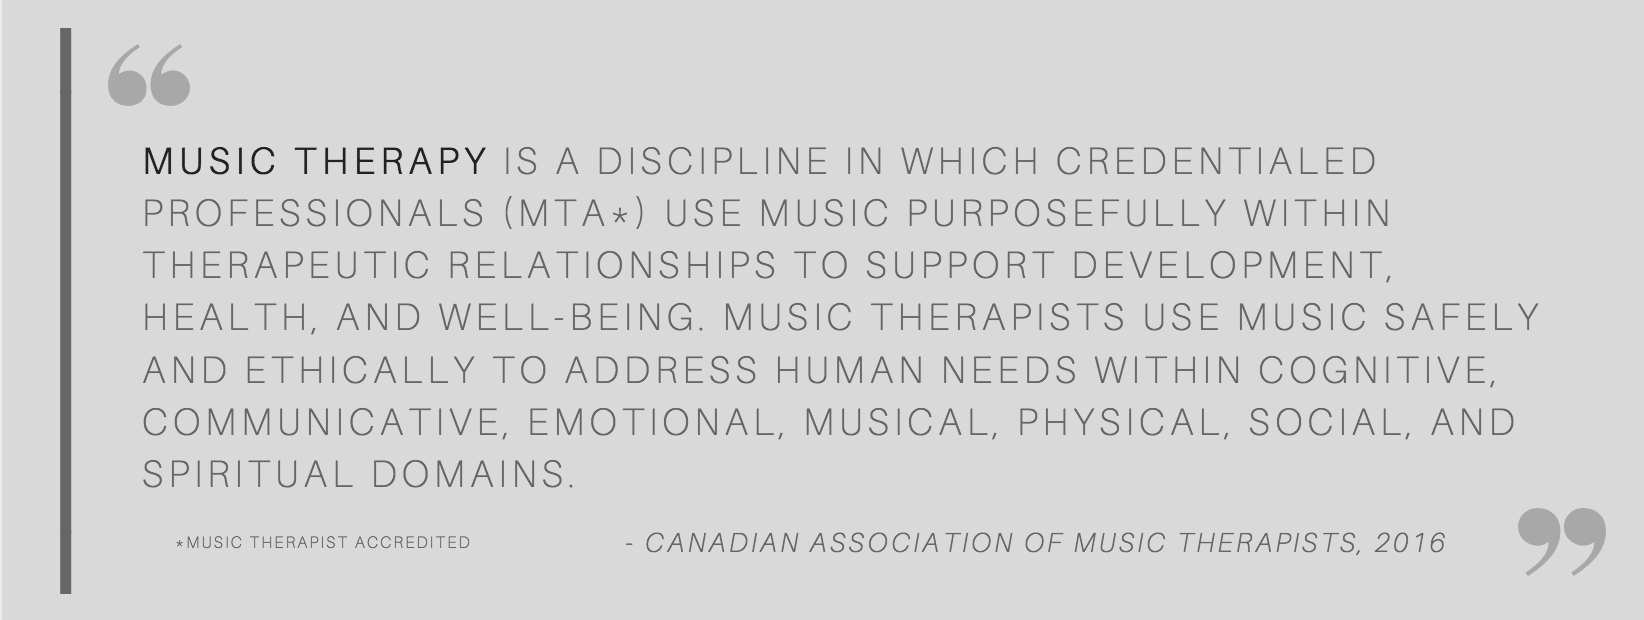 Music therapy definition (CAMT)